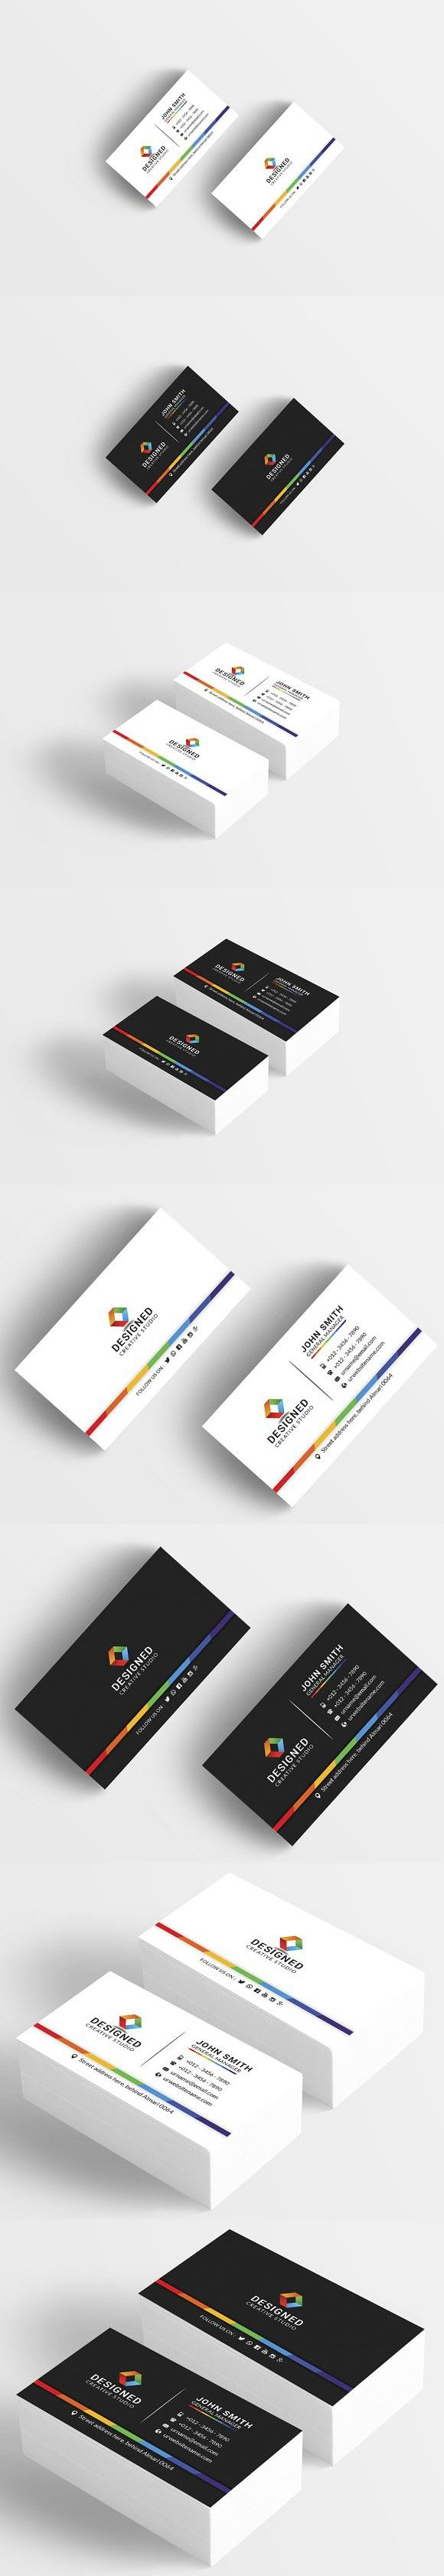 Colorful business card business card templates pinterest colorful business card business card templates pinterest business cards card templates and business colourmoves